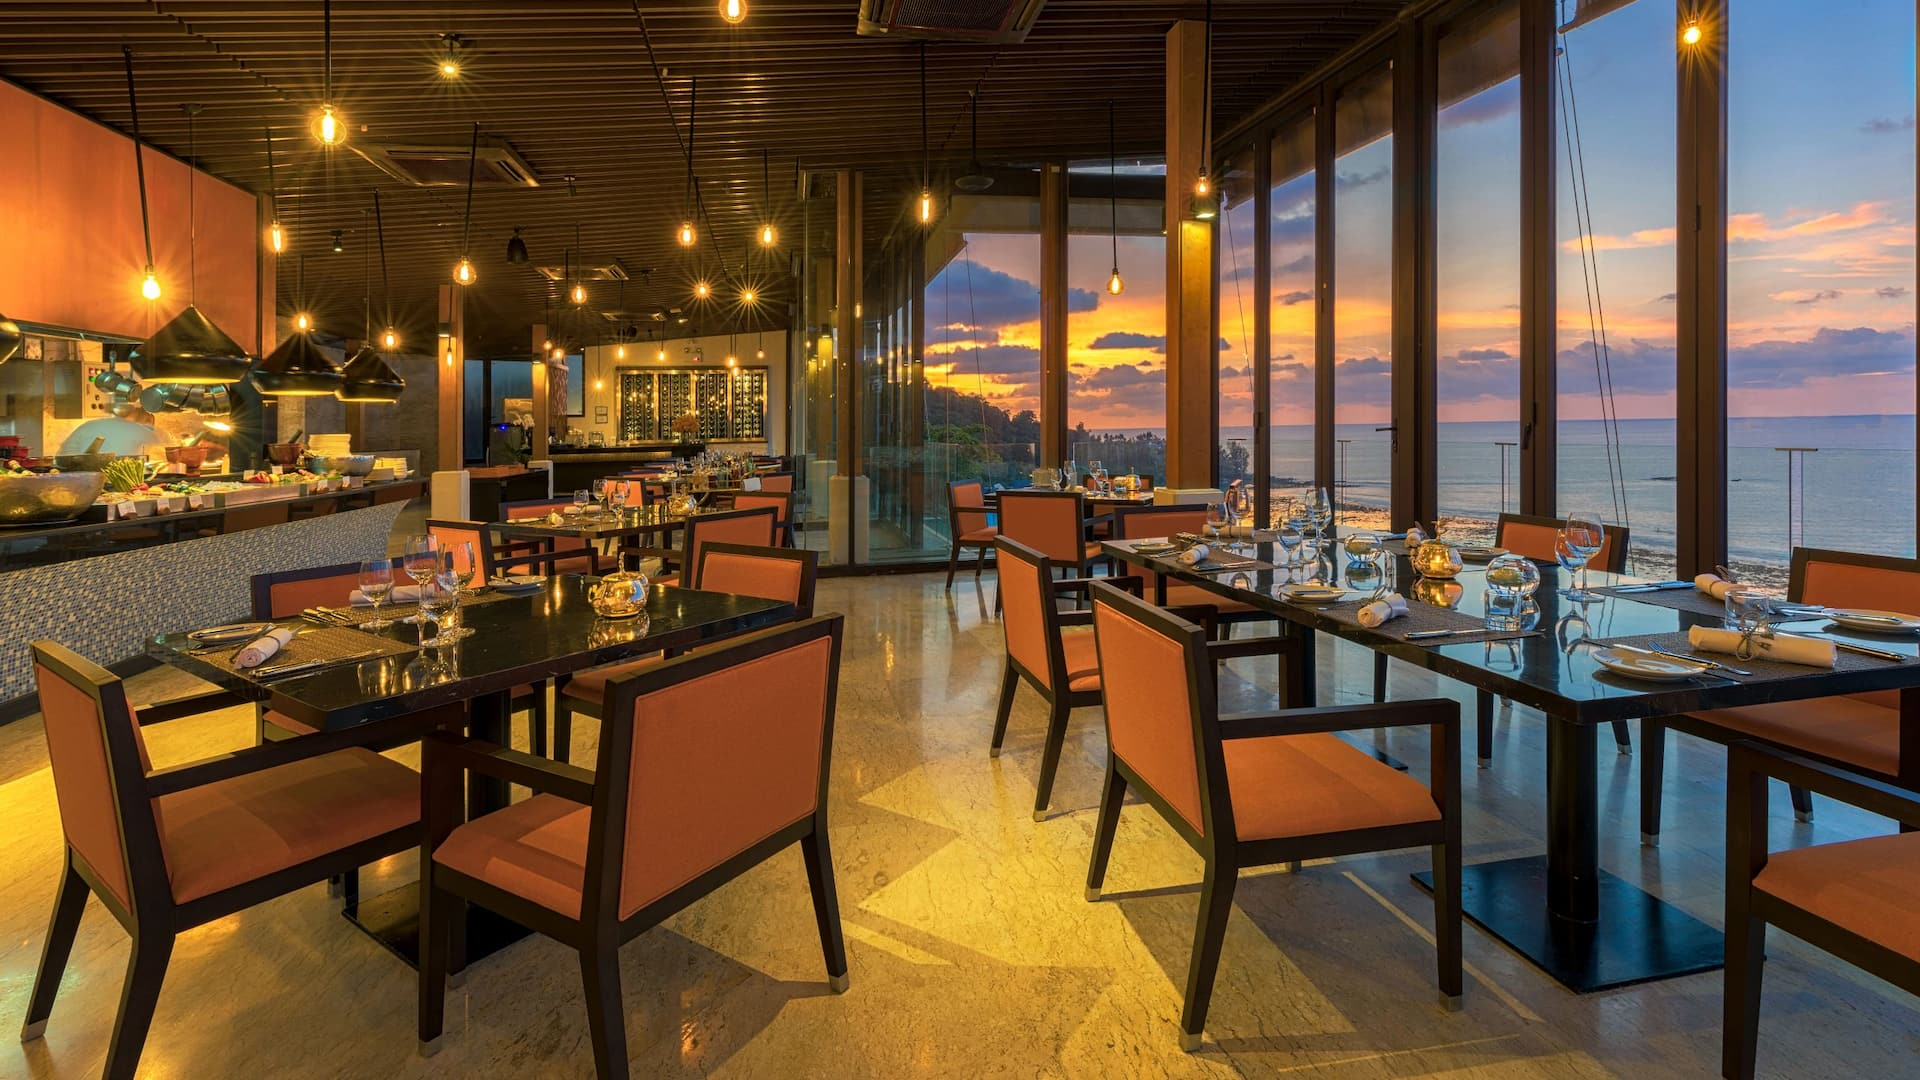 Restaurant Kamala Beach Sunset Grill